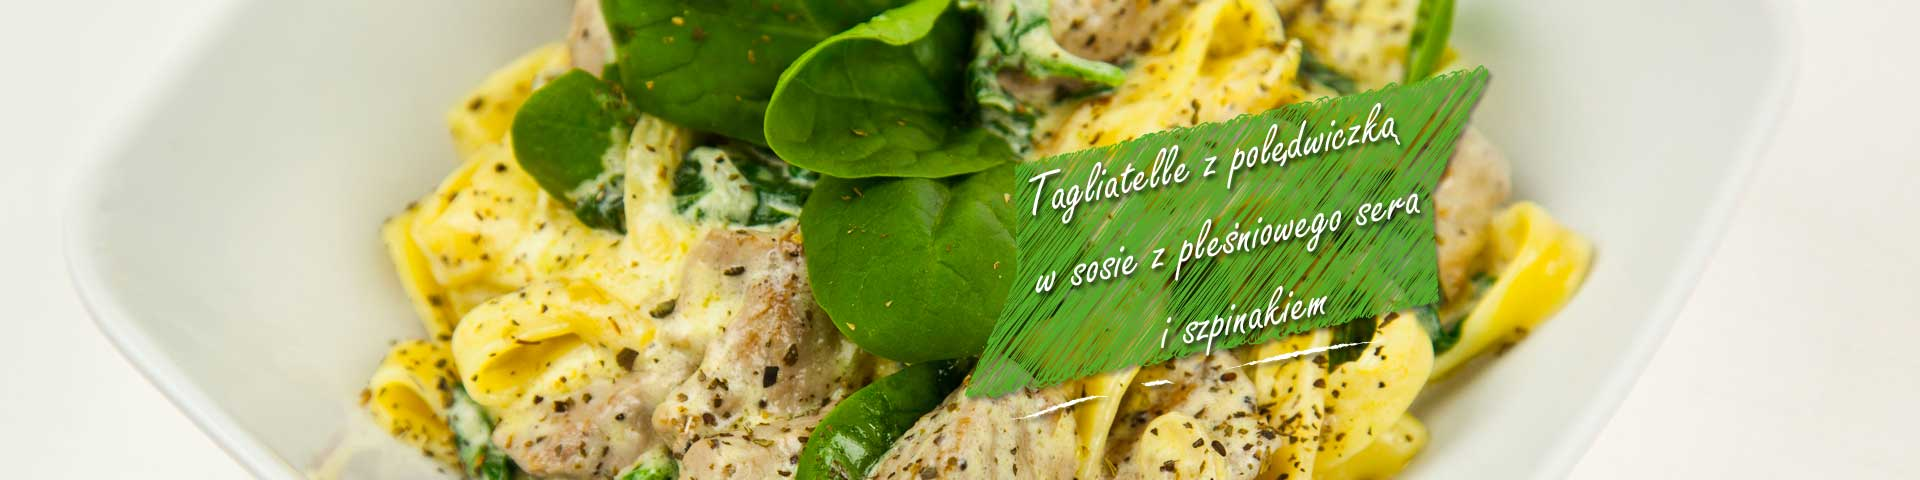 Tagliatelle with pork loin and spinach in a blue cheese sauce